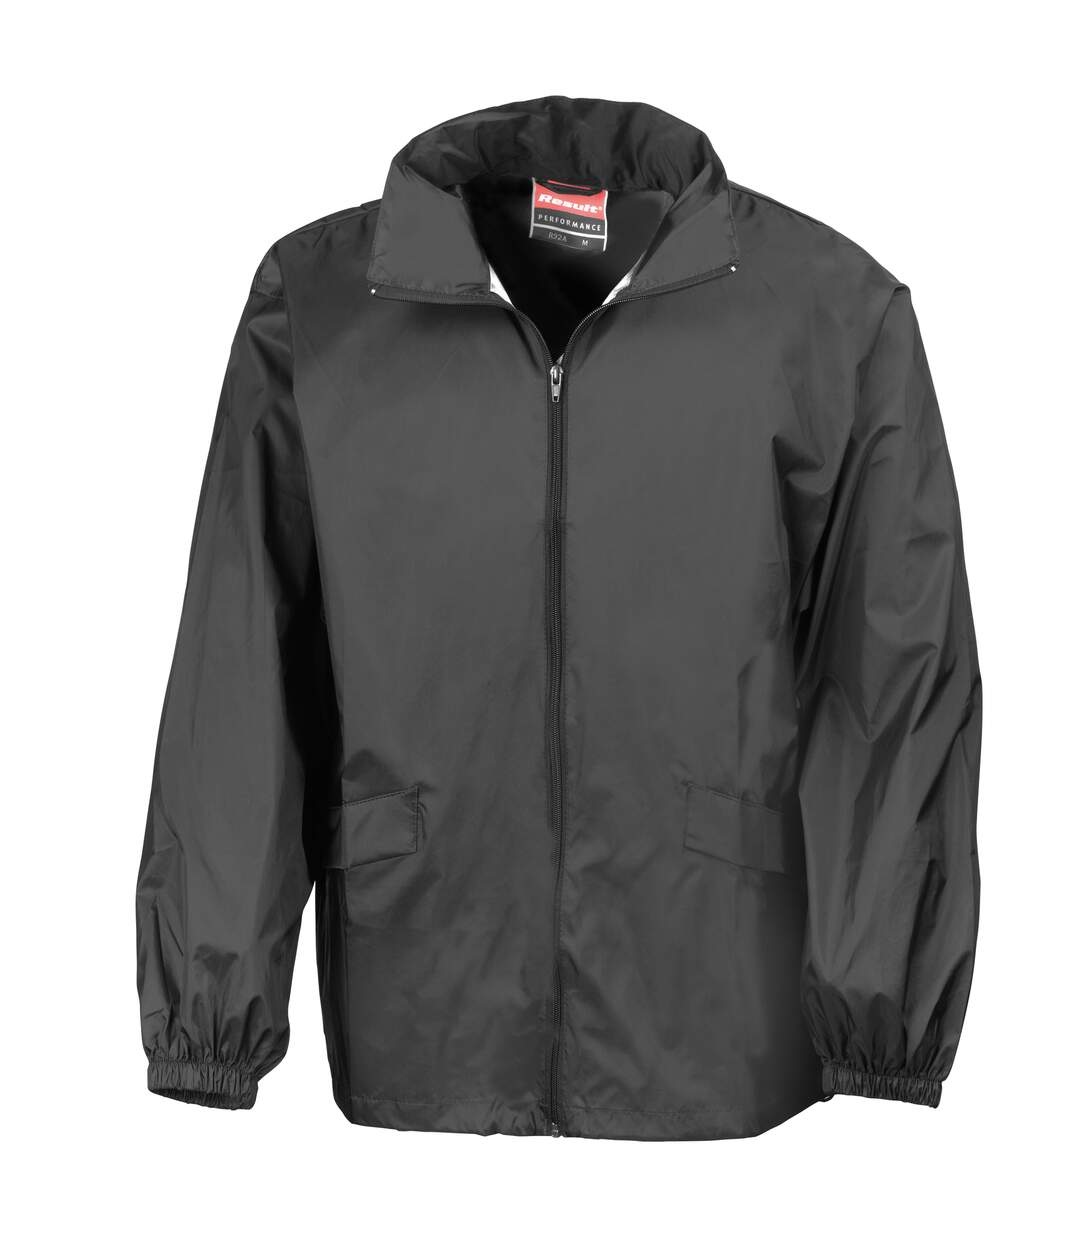 Result Mens Lightweight Windcheater in a Bag Showerproof Windproof Jacket (Concealed Hood) (Black) - UTBC938